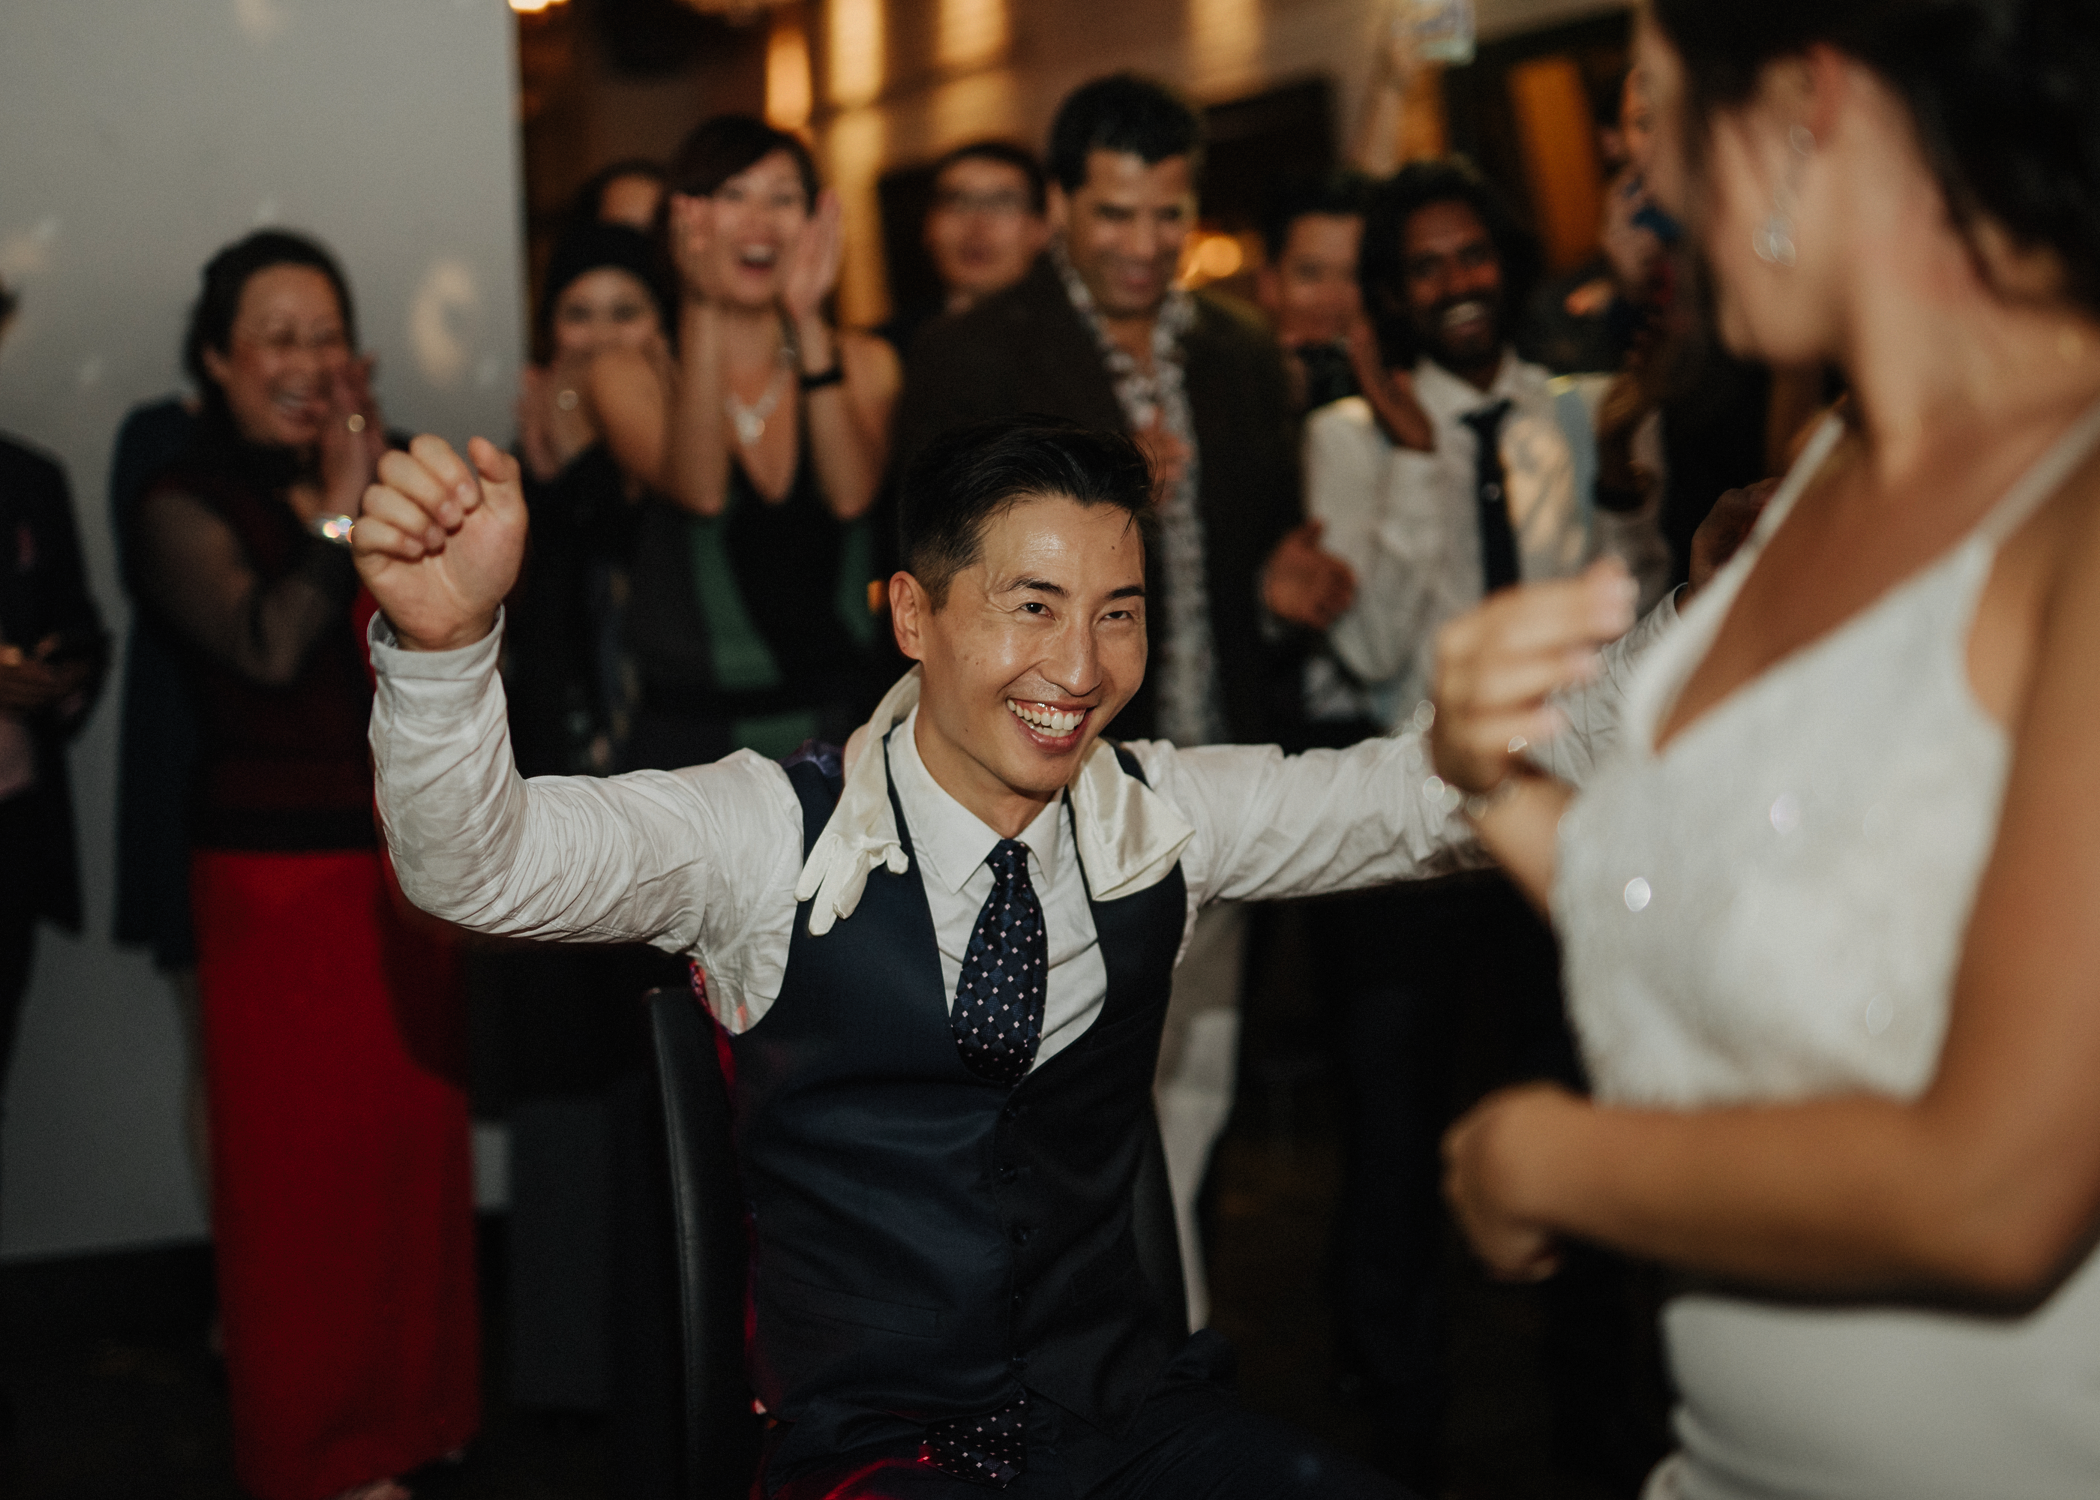 088-kaoverii-silva-az-wedding-vancouver-photography.png